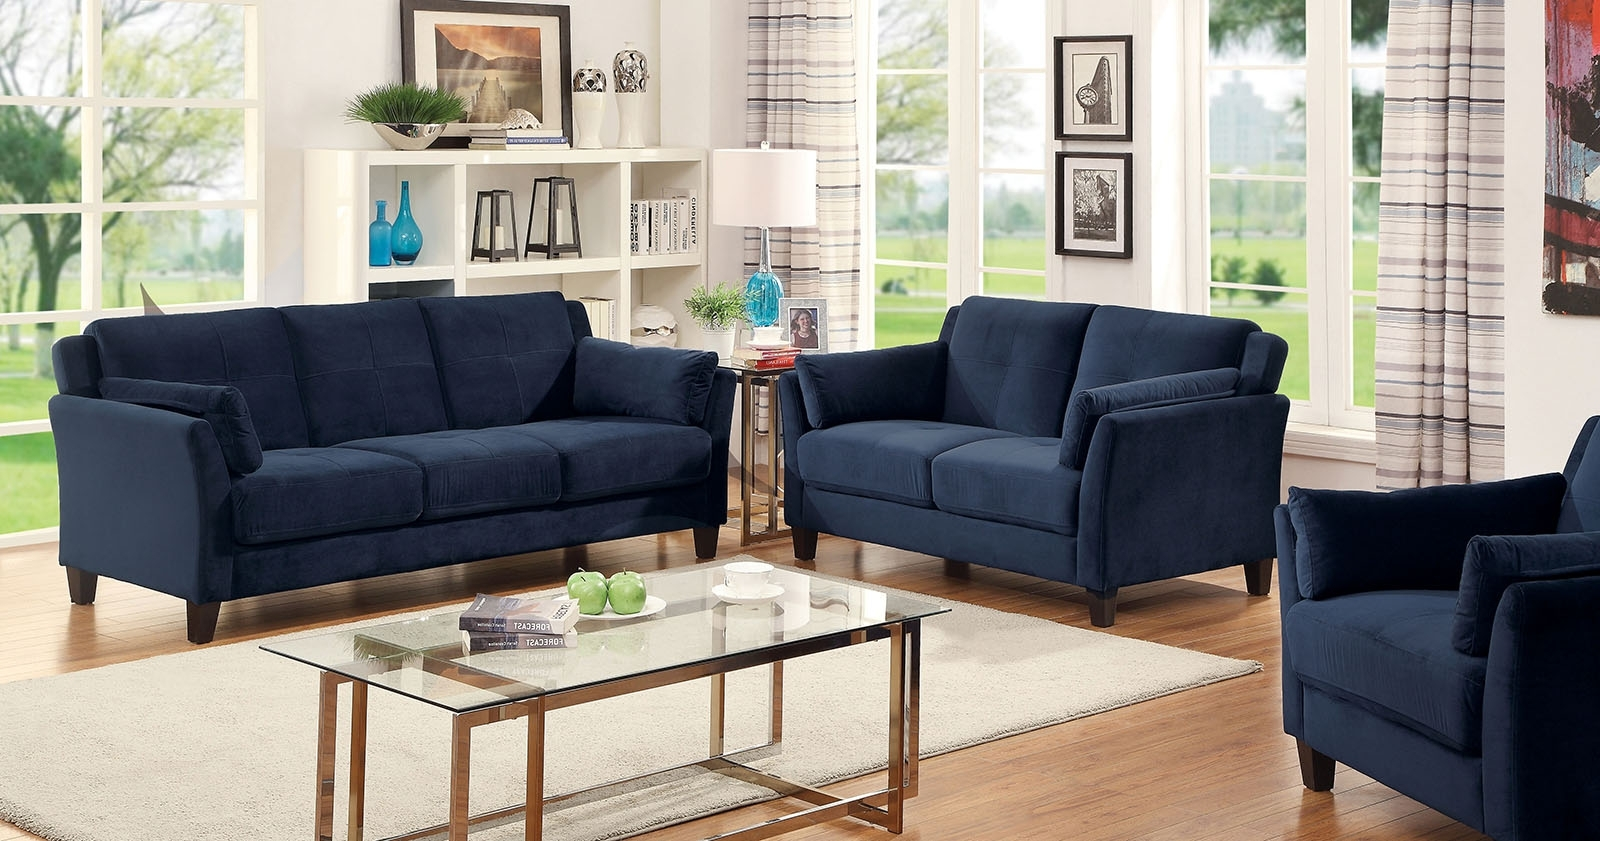 Most Recent Furniture Of America Cm6716Nv Sf Cm6716Nv Lv Cm6716Nv Ch Ysabel Inside Contemporary Fabric Sofas (View 14 of 20)